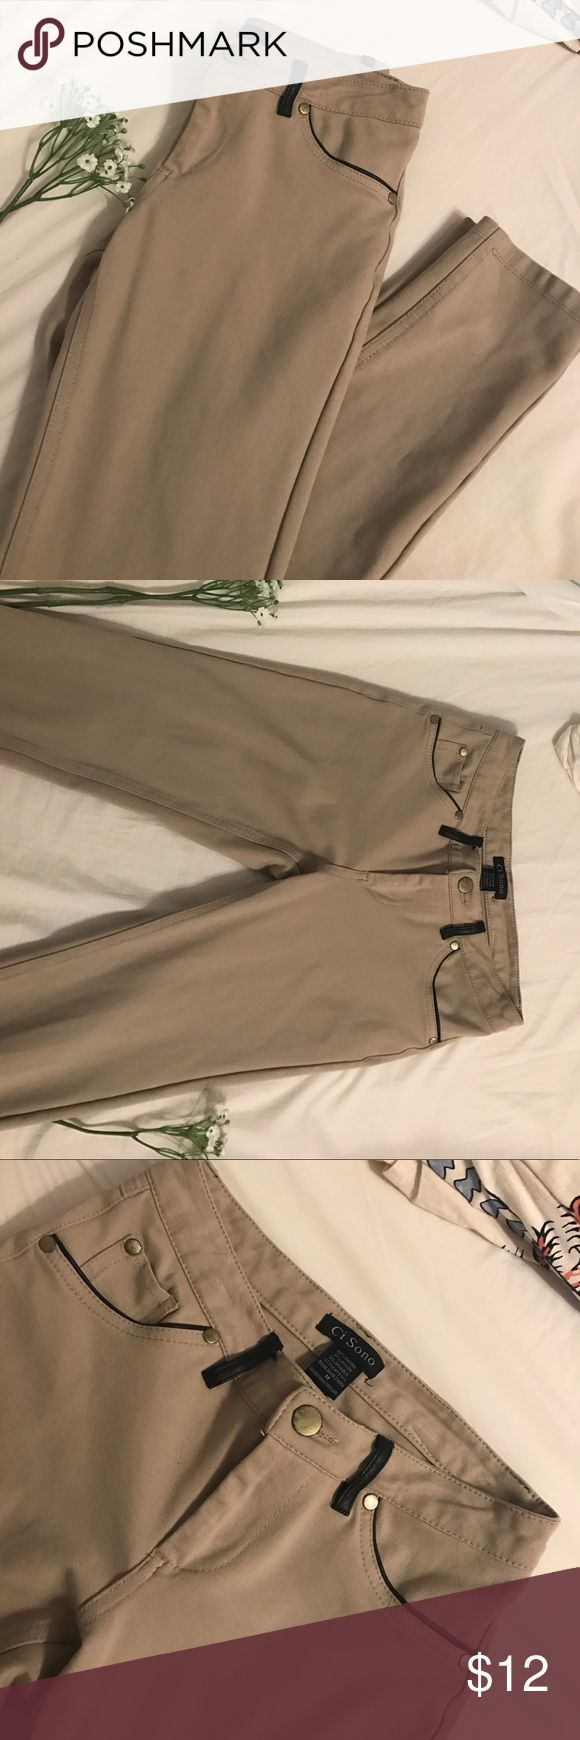 Khaki Jeggings with Leather Details Khaki Jeggings with gold accents and faux leather details! Material is very stretchy and comfortable to wear! No flaws, in excellent condition 😊 Pants